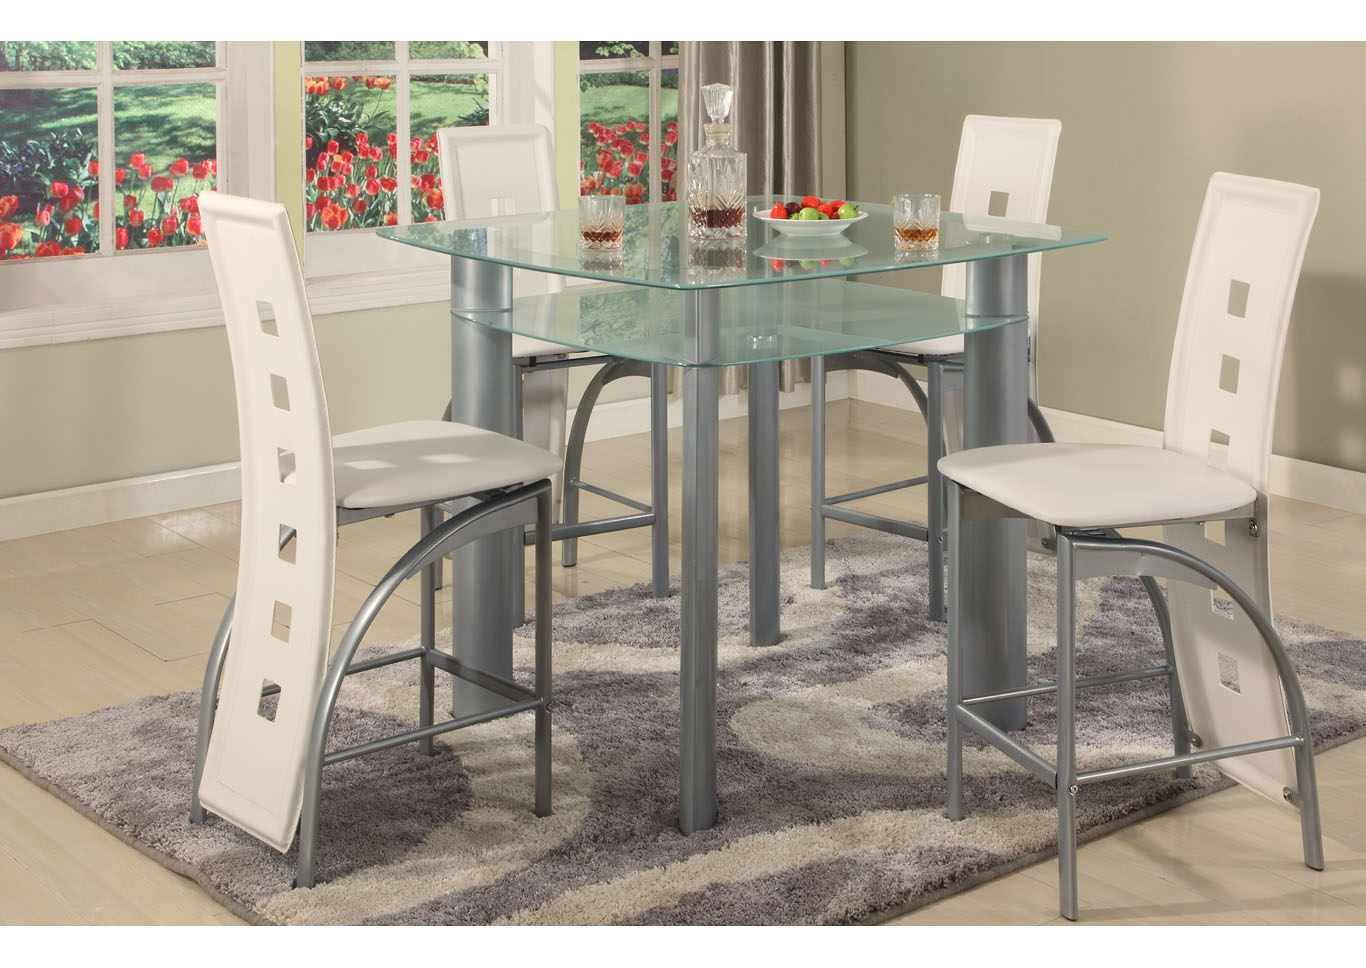 Grey Frosted Edge Glass Top Pub Table,Global Trading